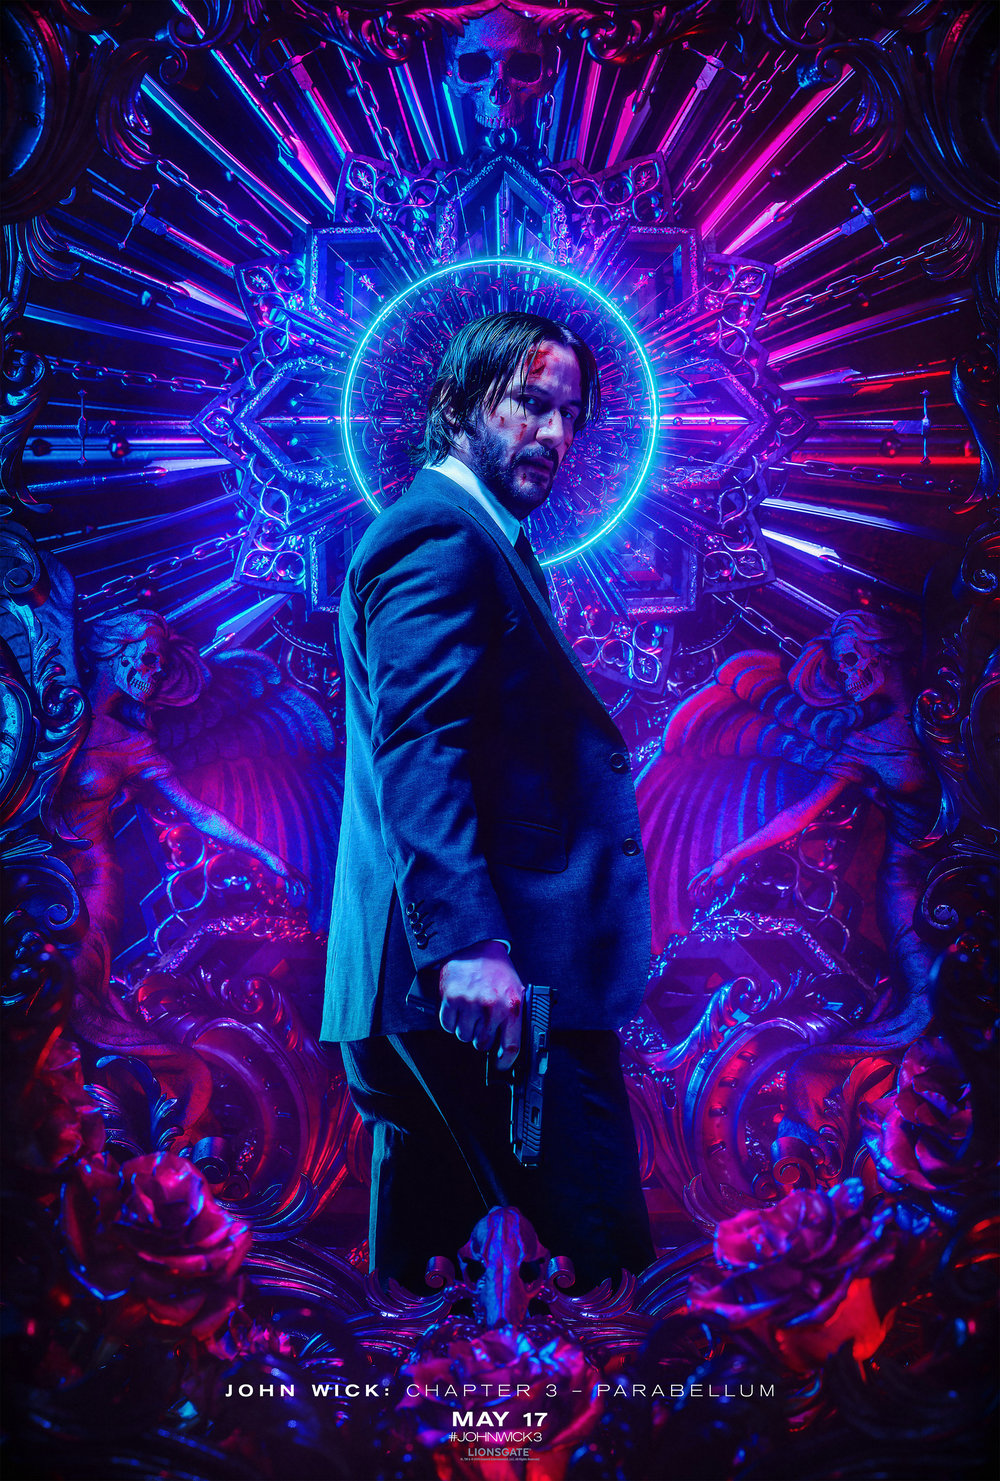 Official|Movie>John Wick: Chapter 3 - Parabellum Live